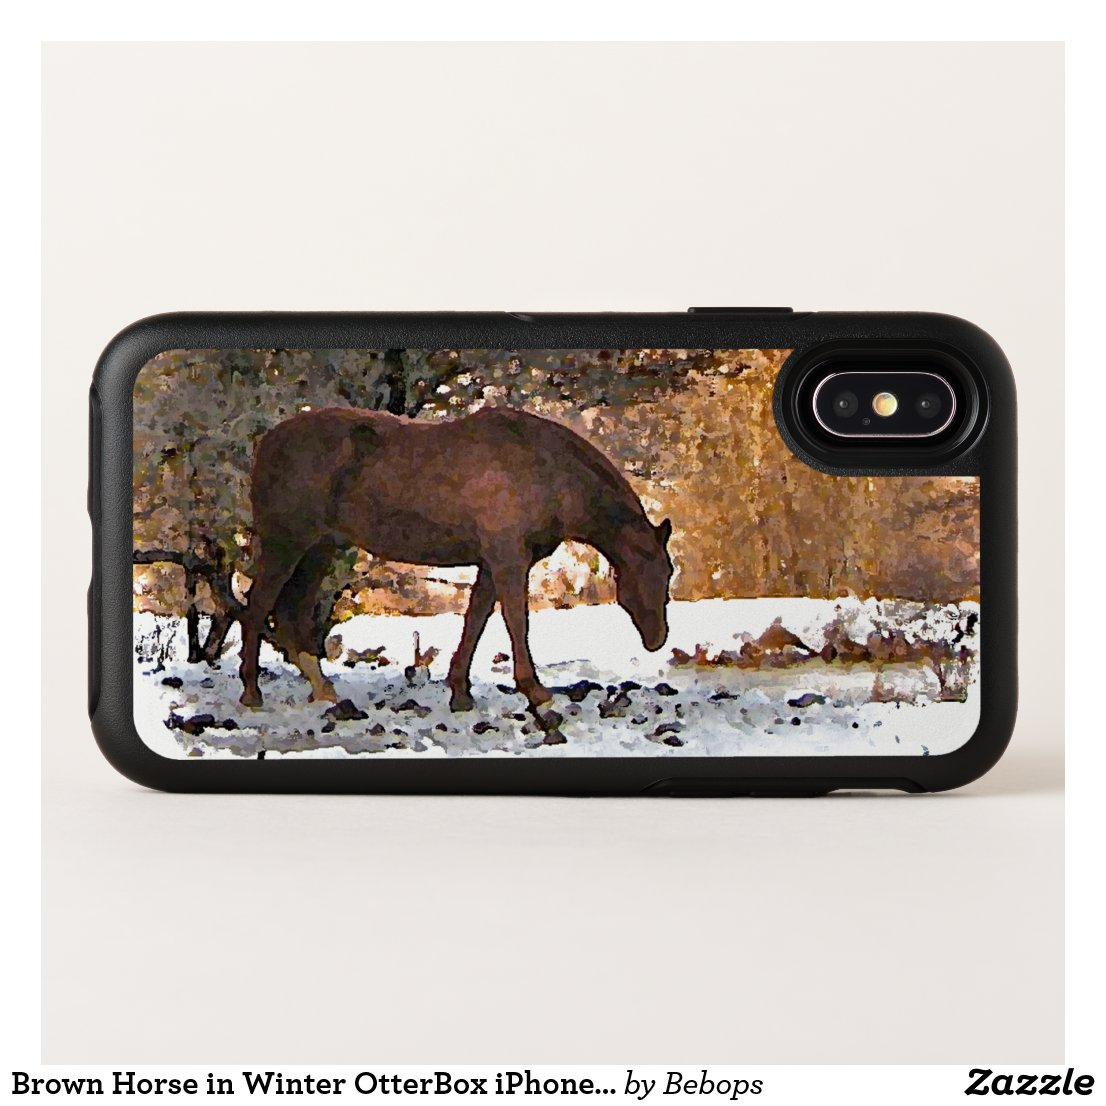 Brown Horse in Winter OtterBox iPhone X Case